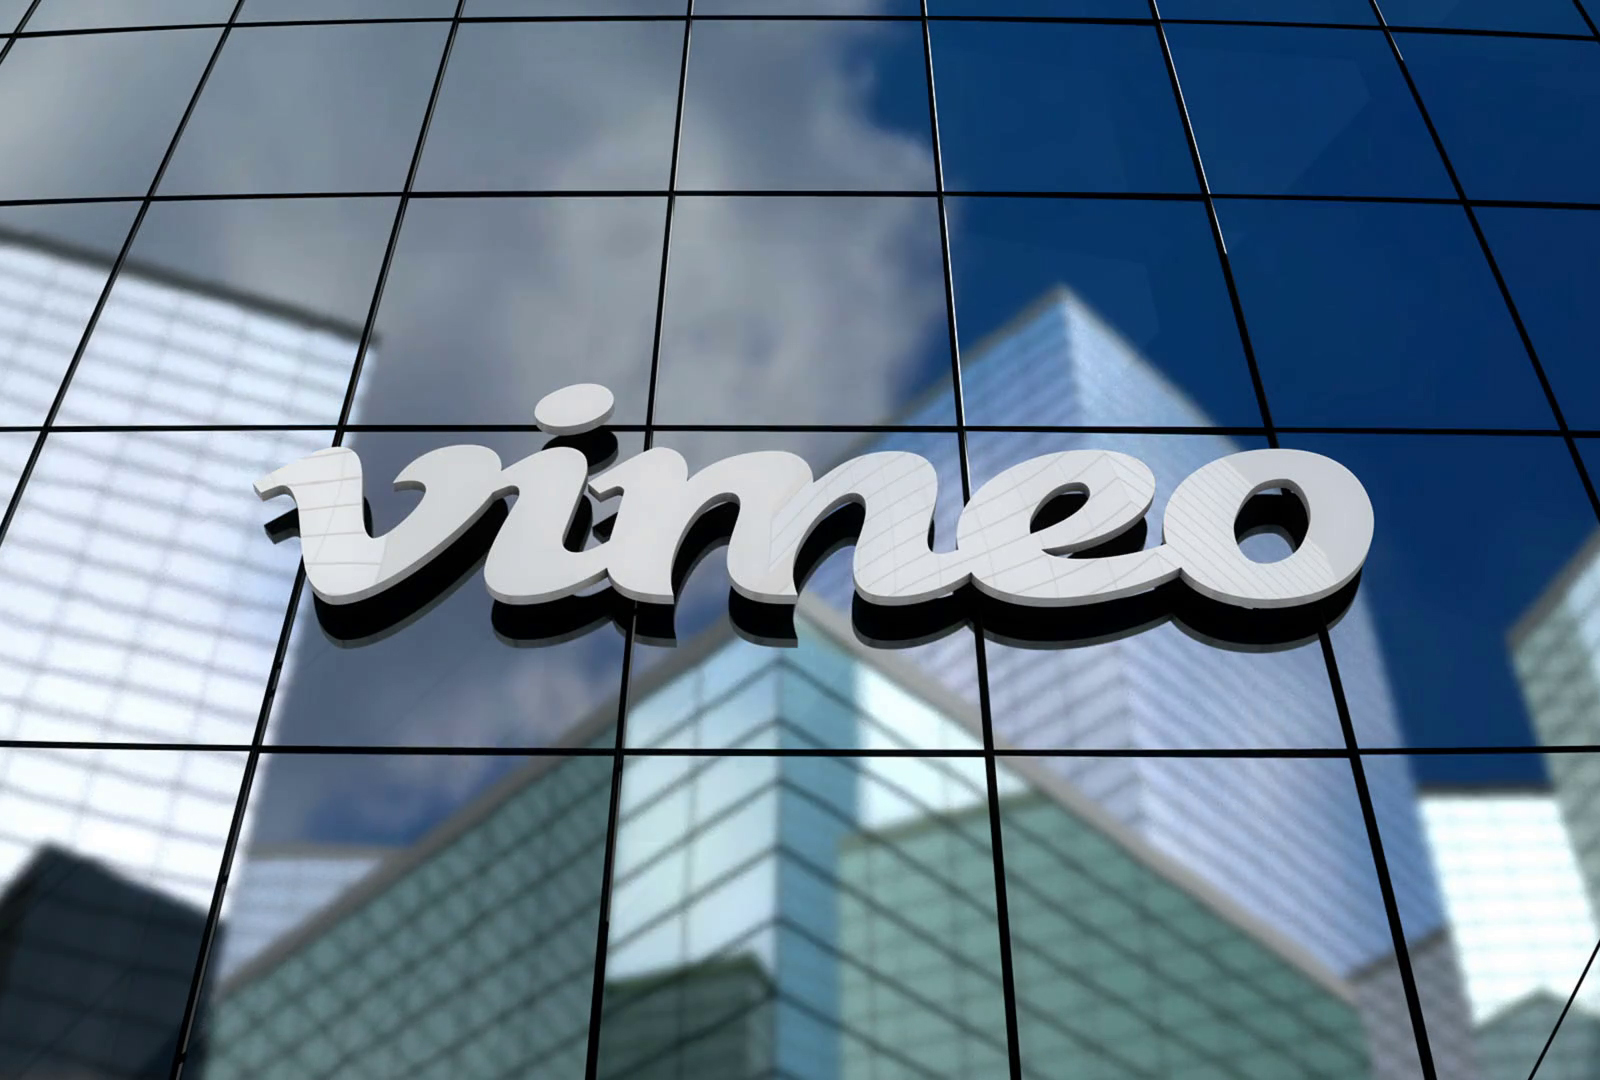 All You Need to Know about Vimeo